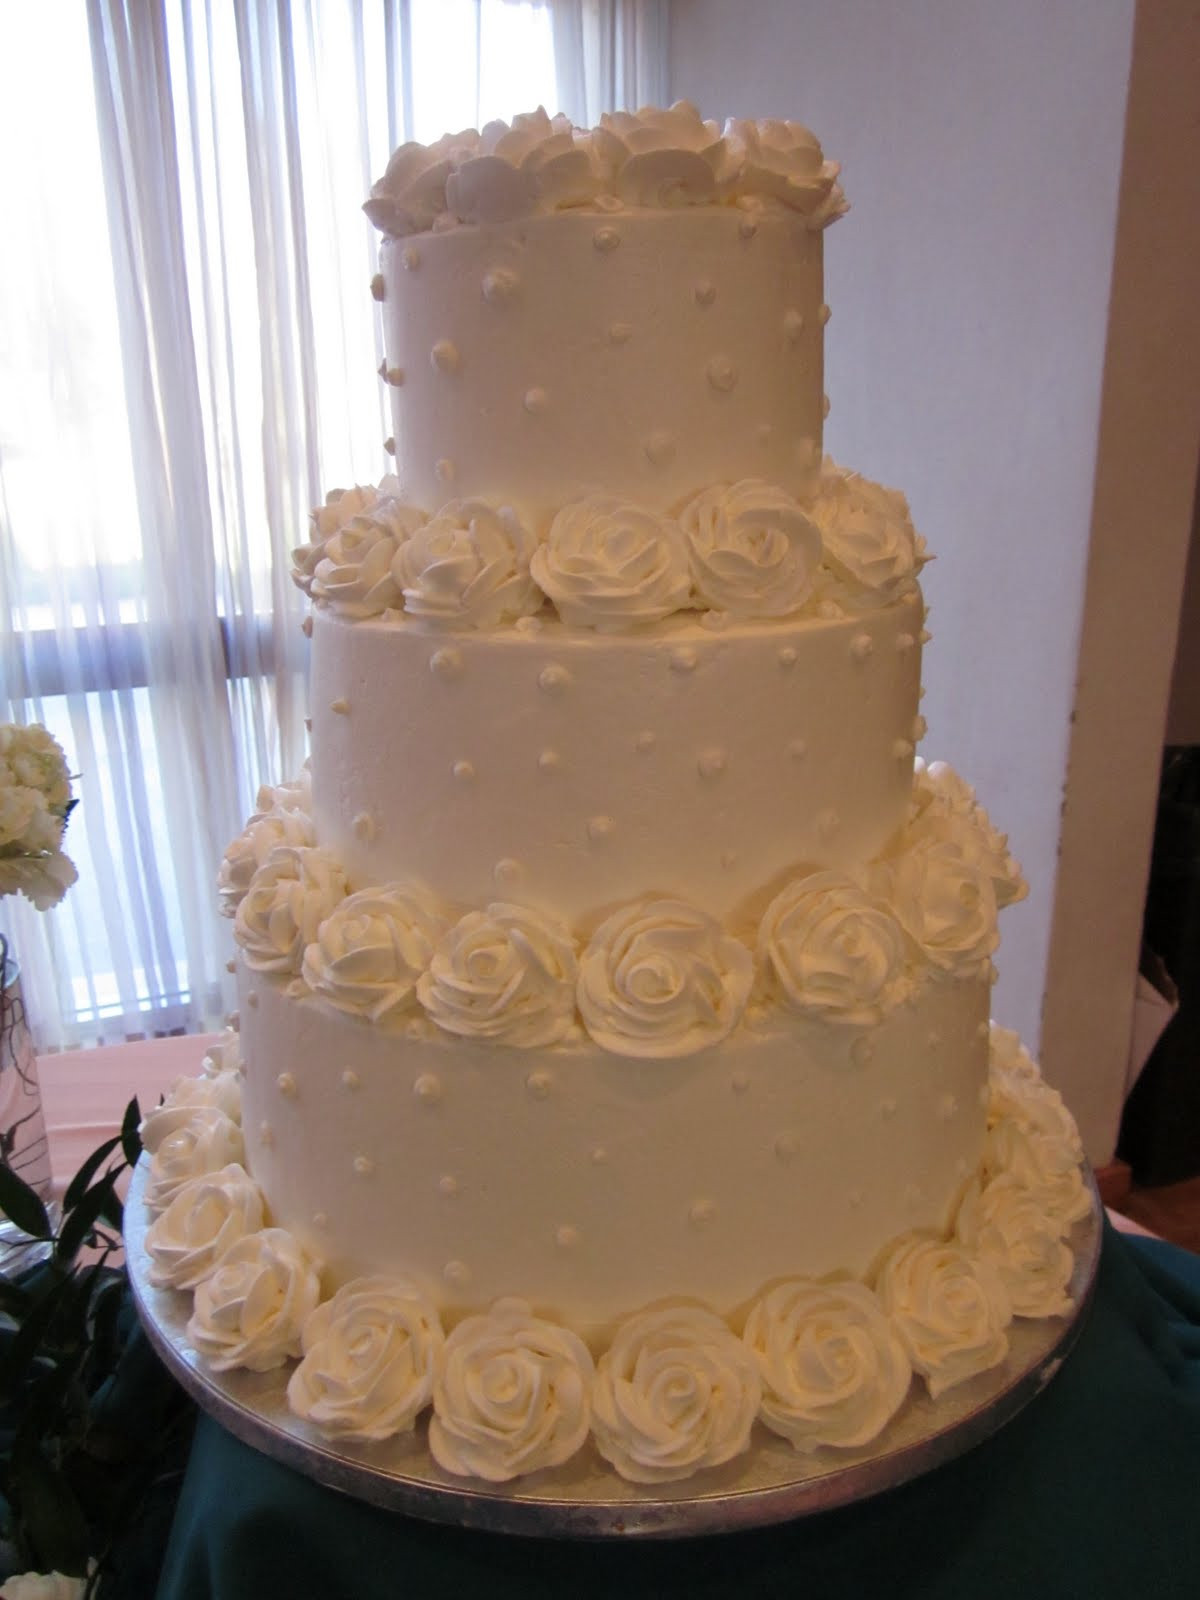 Publix Wedding Cakes Prices 2017 top 20 10 Tips On How to Choose Your Publix Wedding Cakes Idea